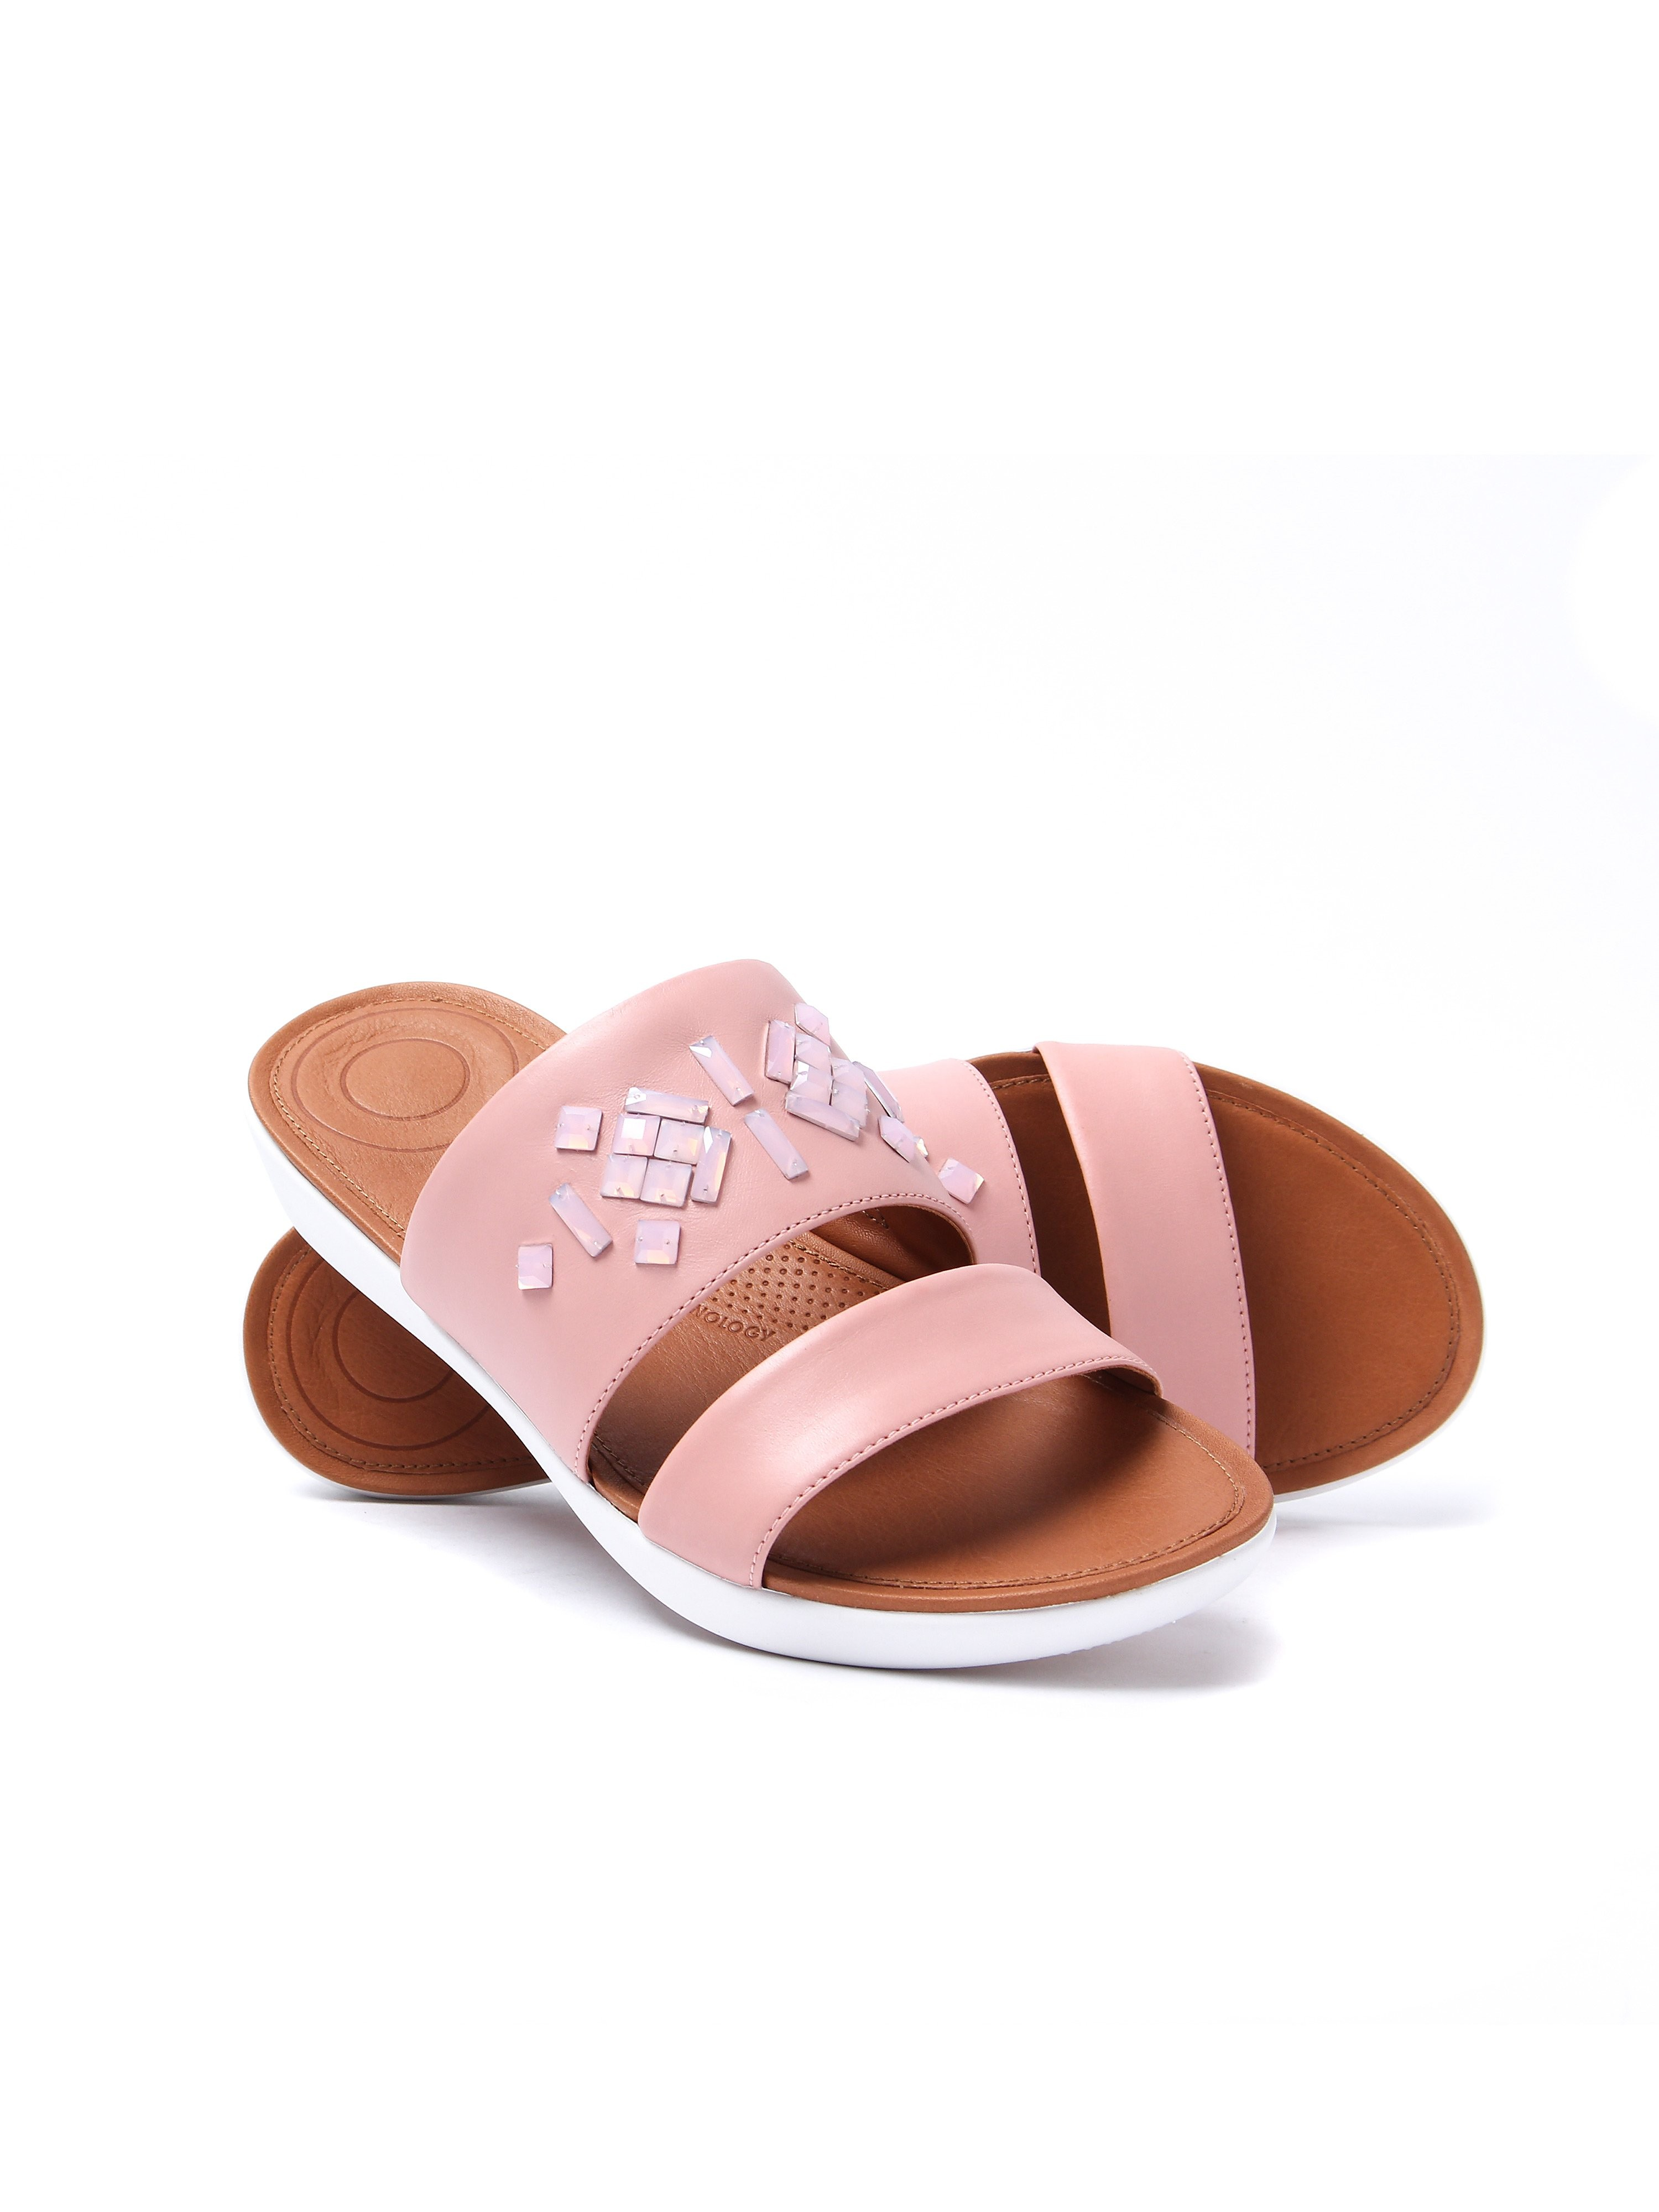 FitFlop Women's Delta Leather Crystal Slide Sandals - Dusky Pink